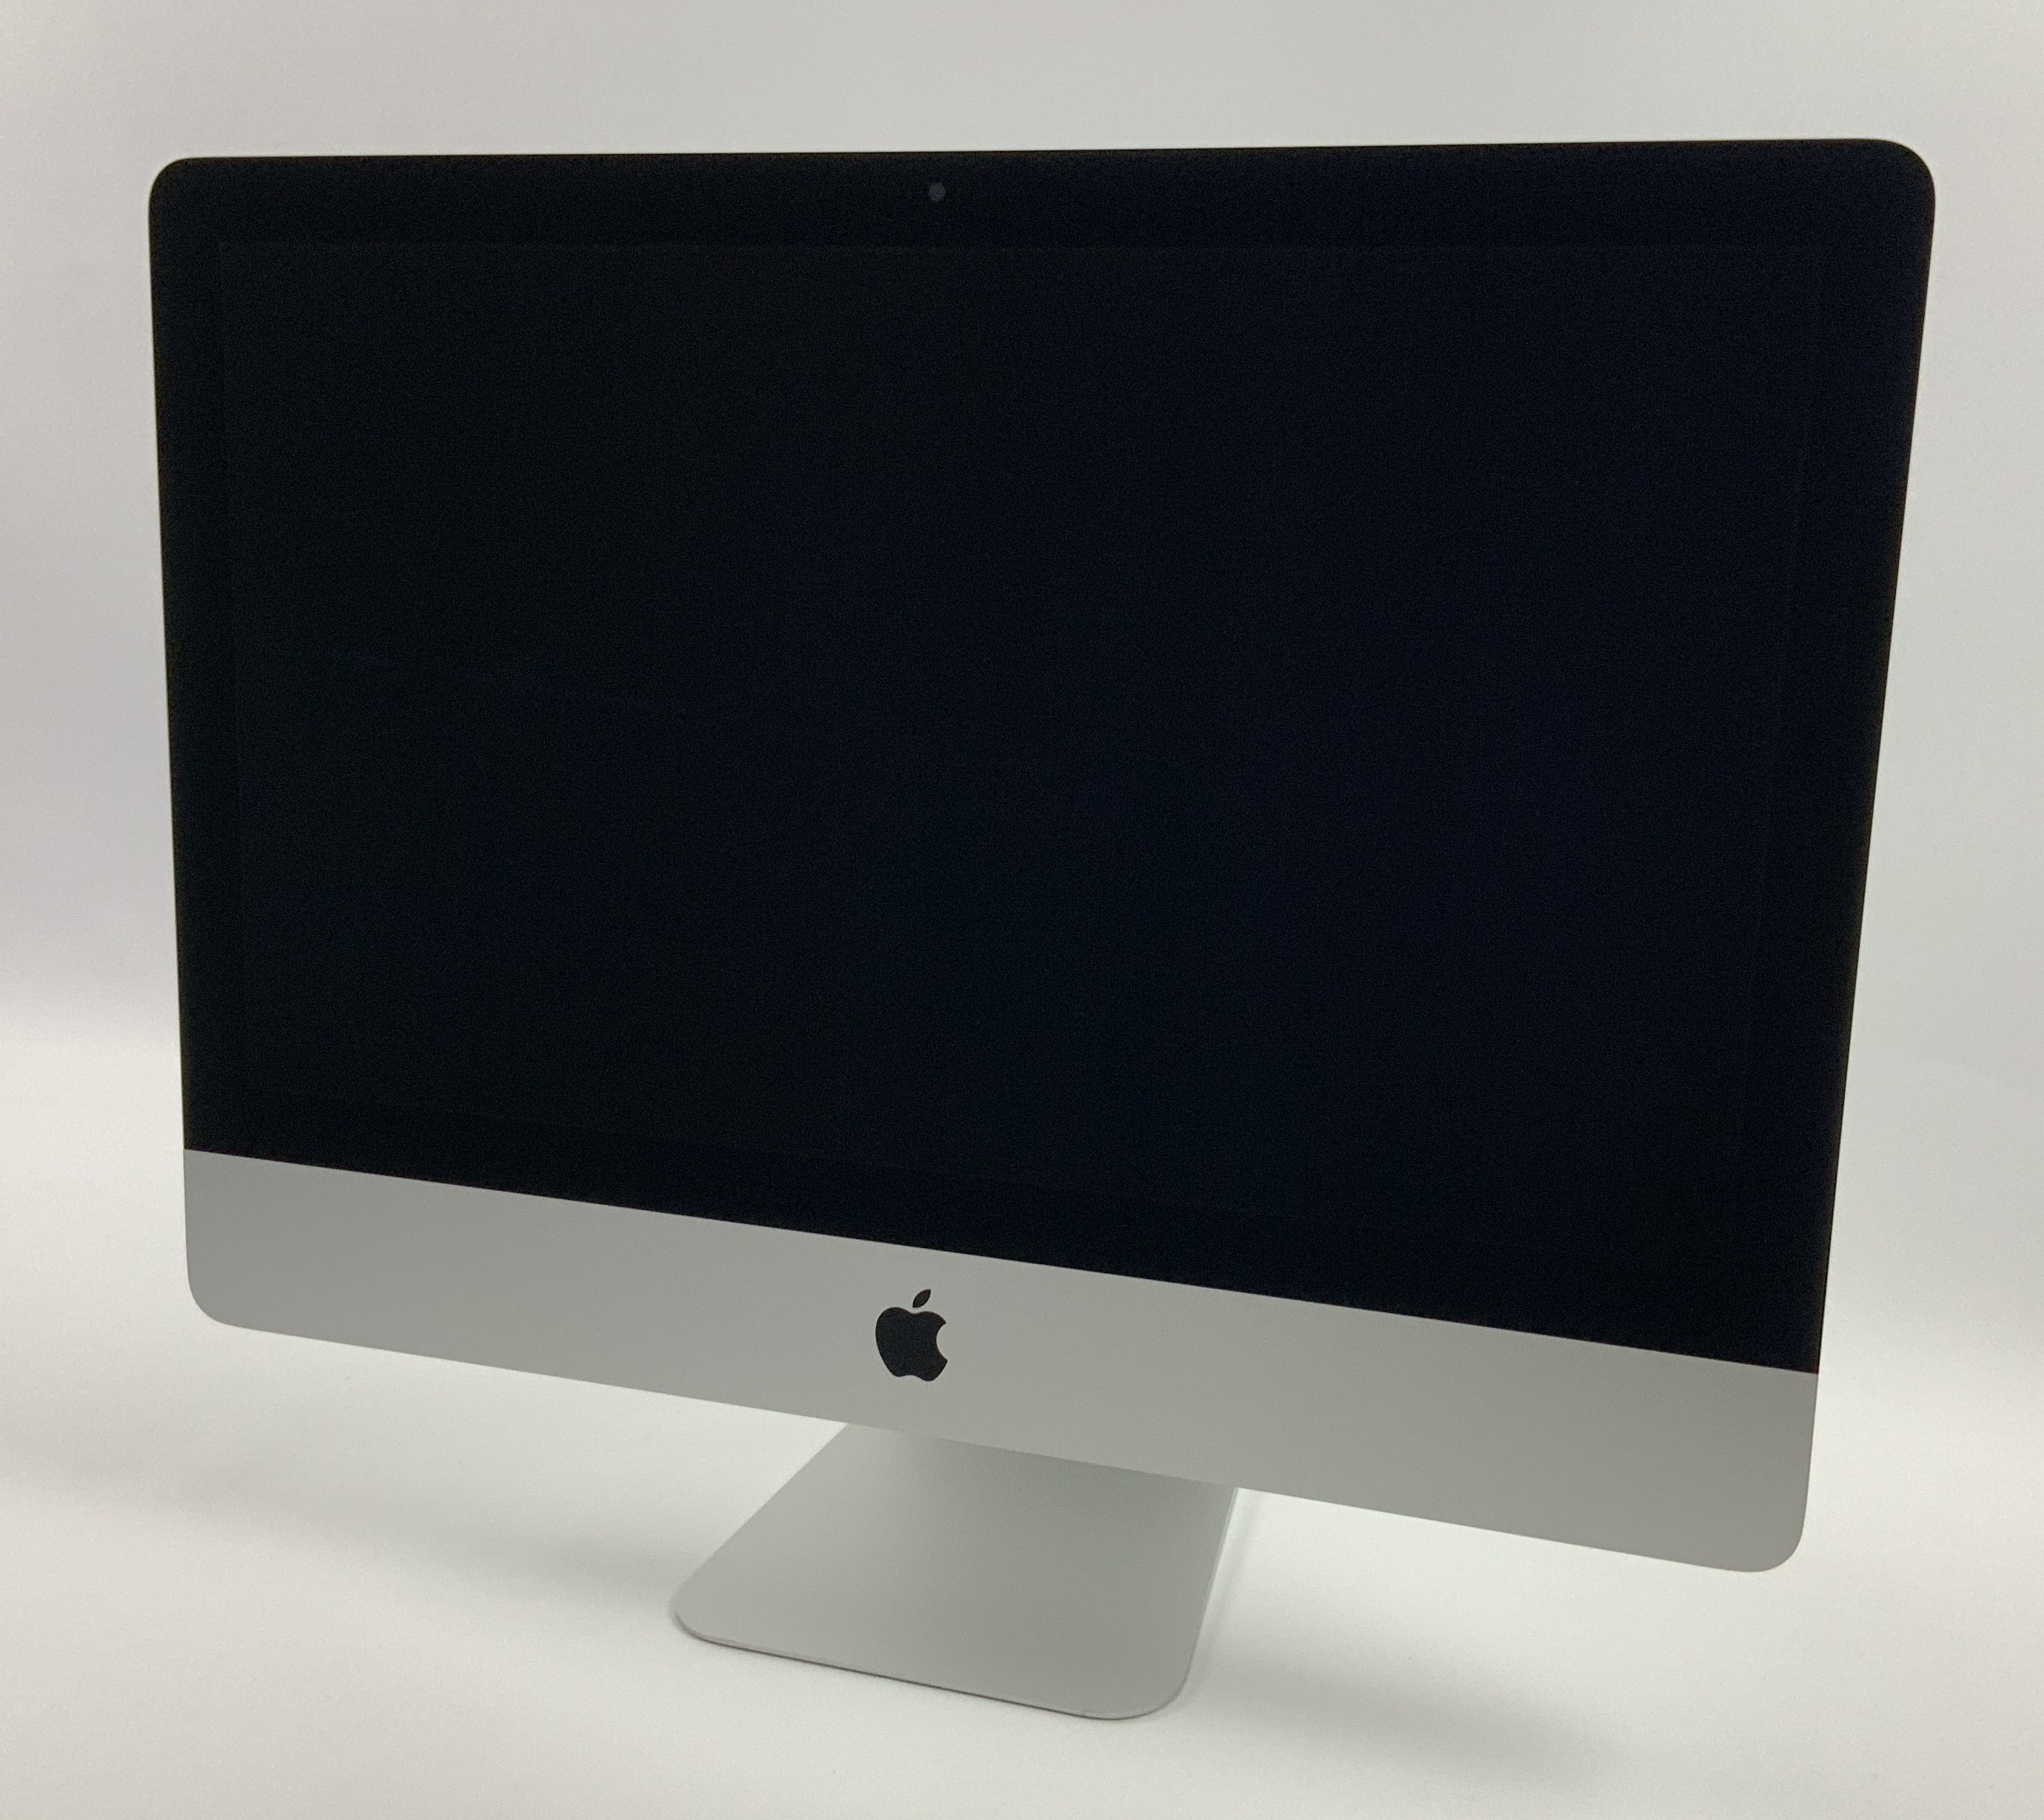 "iMac 21.5"" Late 2015 (Intel Core i5 1.6 GHz 8 GB RAM 1 TB HDD), Intel Core i5 1.6 GHz, 8 GB RAM, 1 TB HDD, imagen 1"